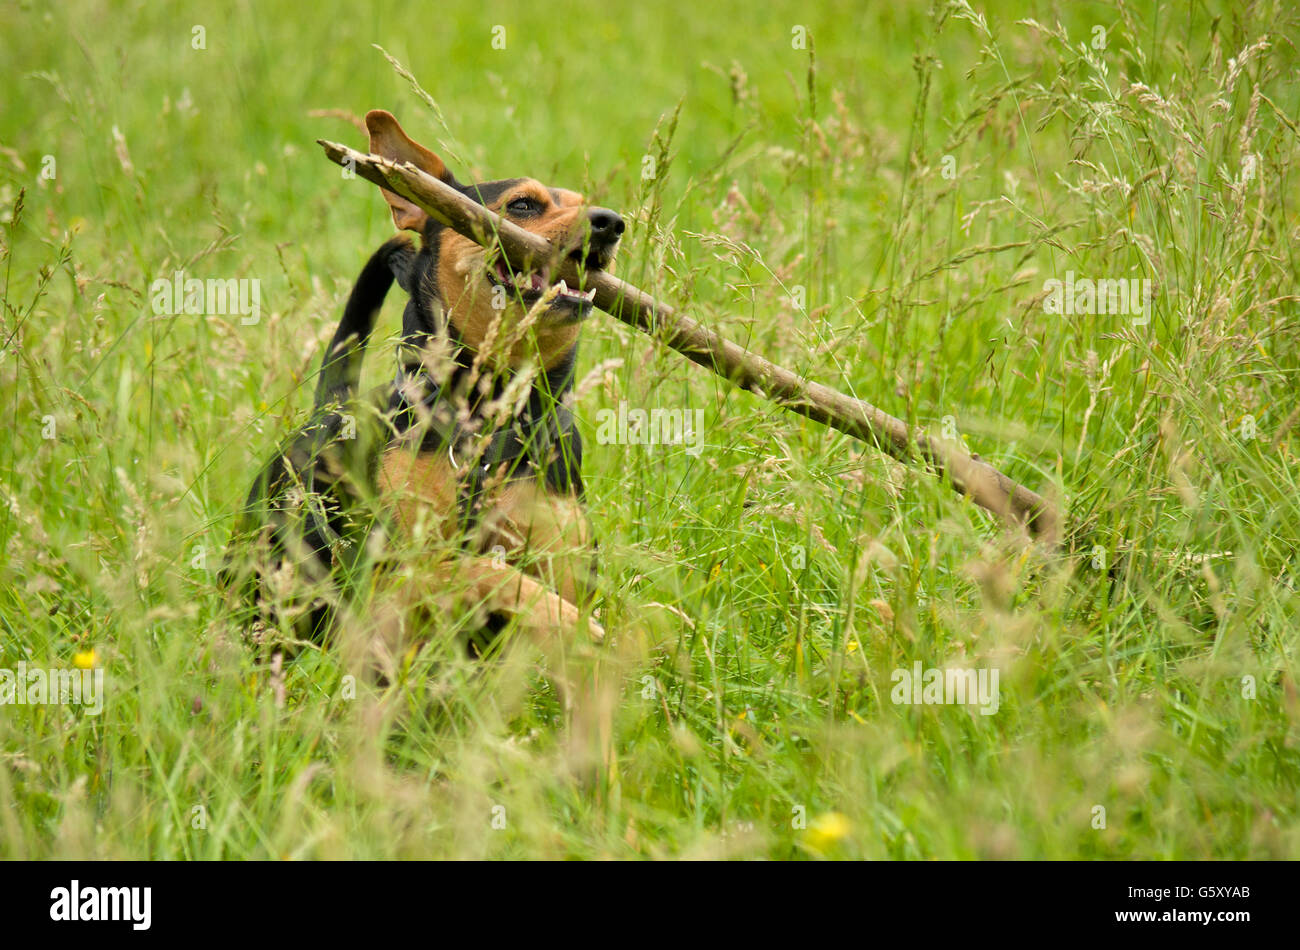 Joyful dog running through a meadow and retrieves a big stick. - Stock Image